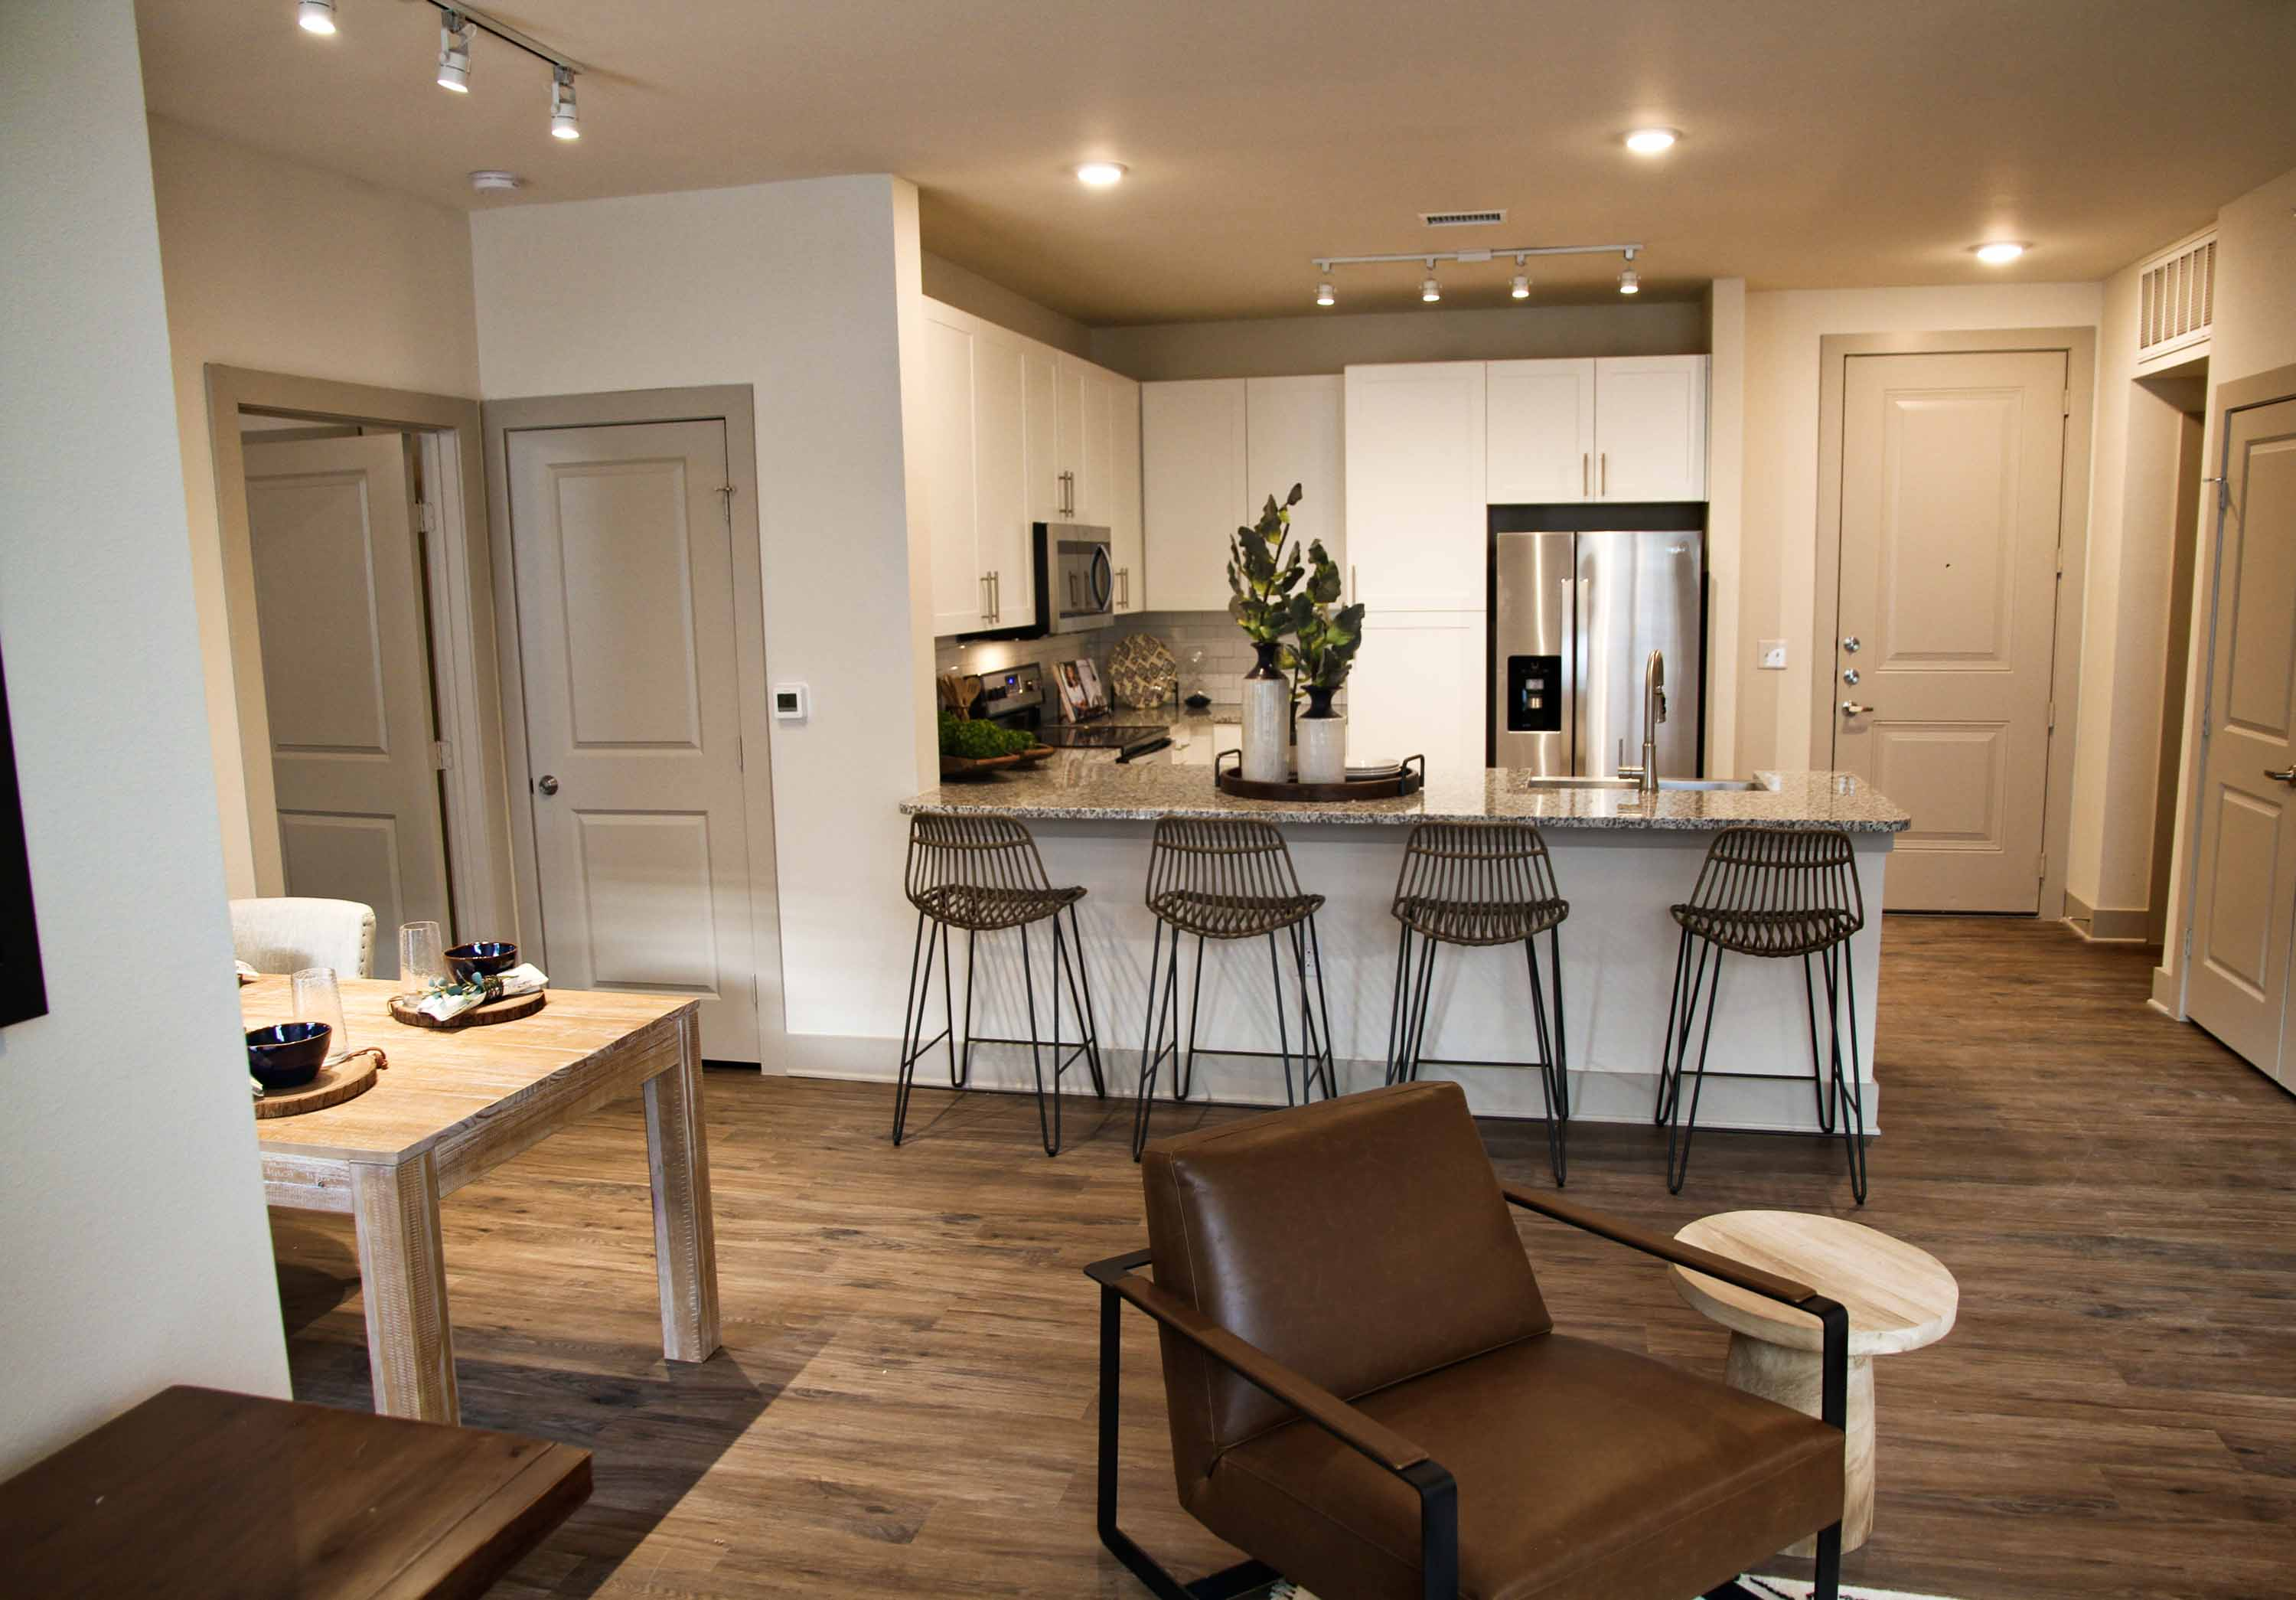 Kitchen and living area with hardwood style floors, tall breakfast bar, dining table, and bright directional lighting.